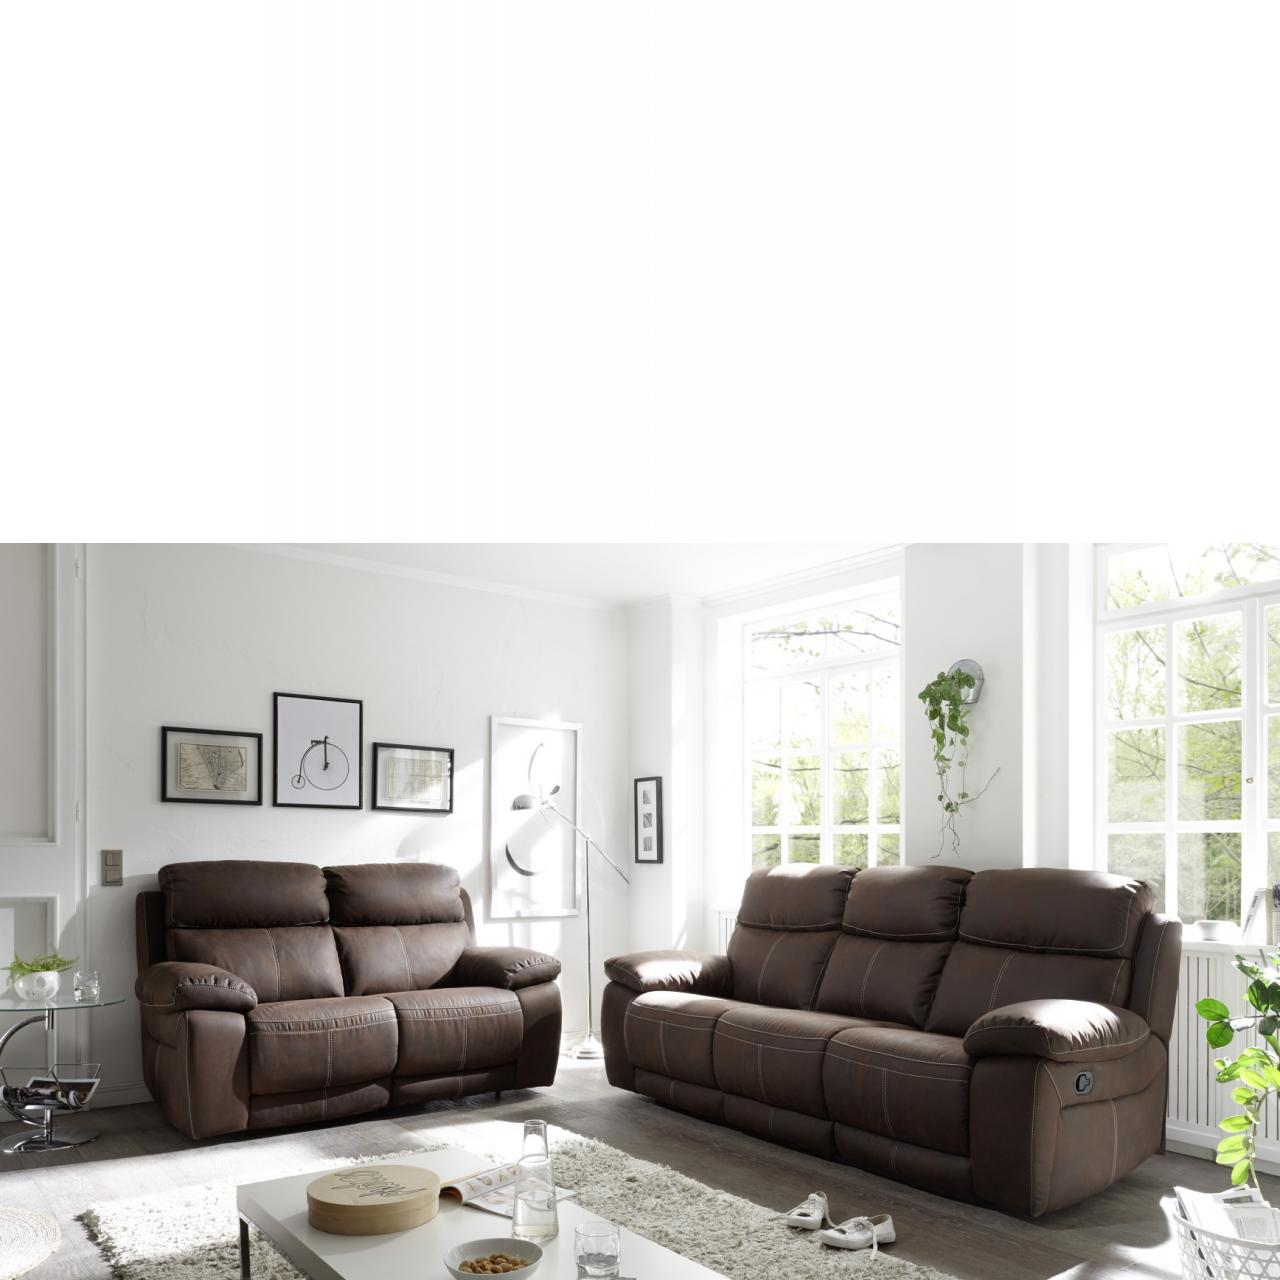 polstergarnitur verona 2s dark brown 2 er sofa. Black Bedroom Furniture Sets. Home Design Ideas